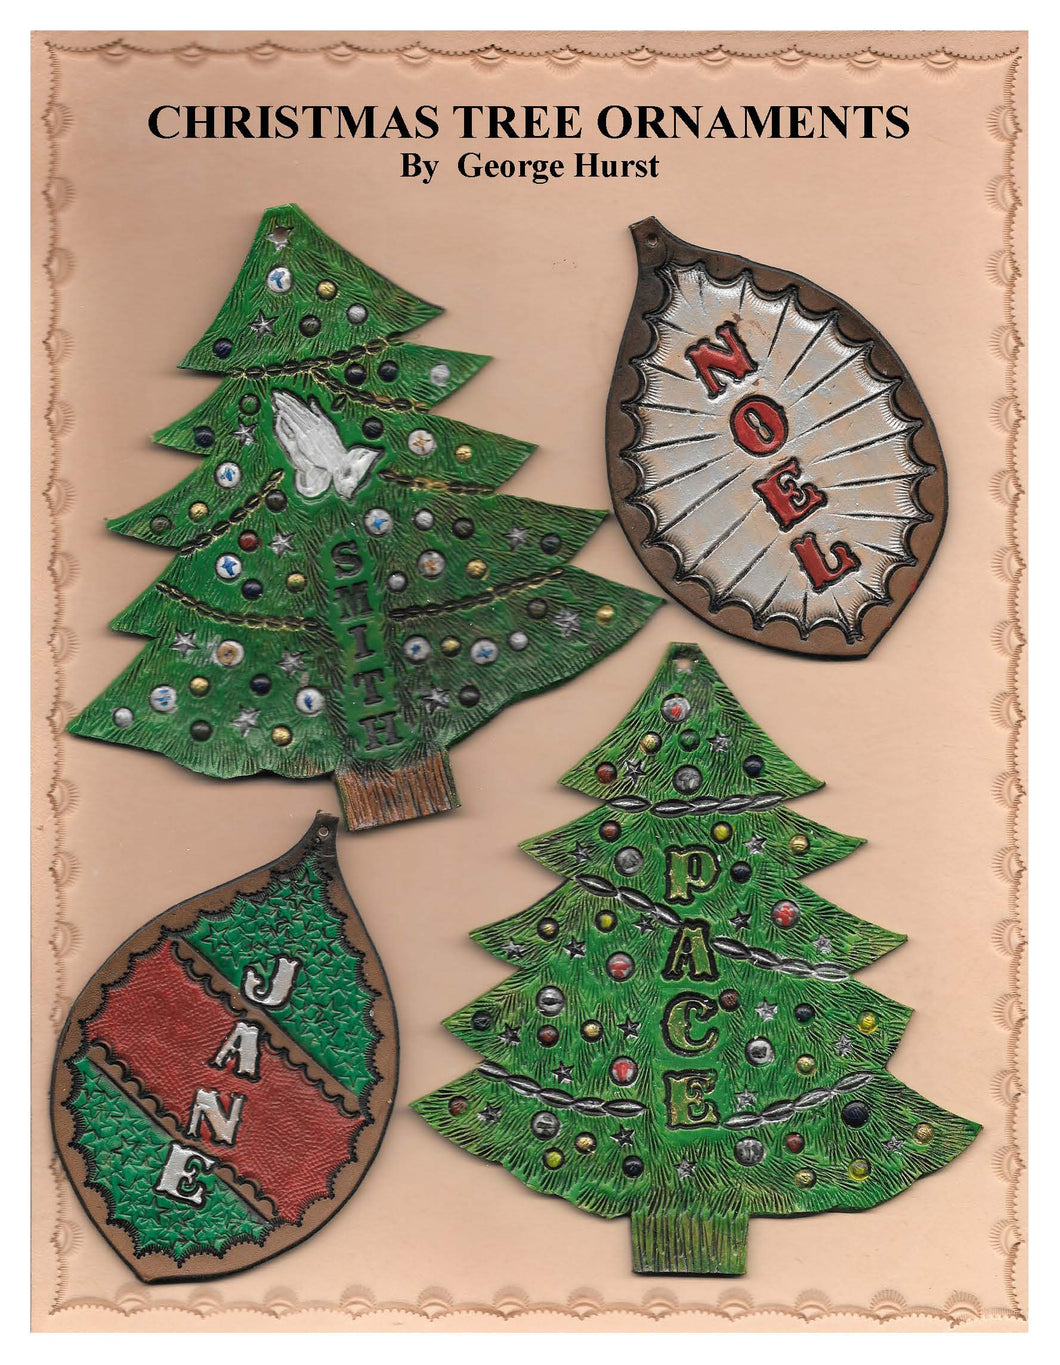 Christmas Tree Ornaments by George Hurst